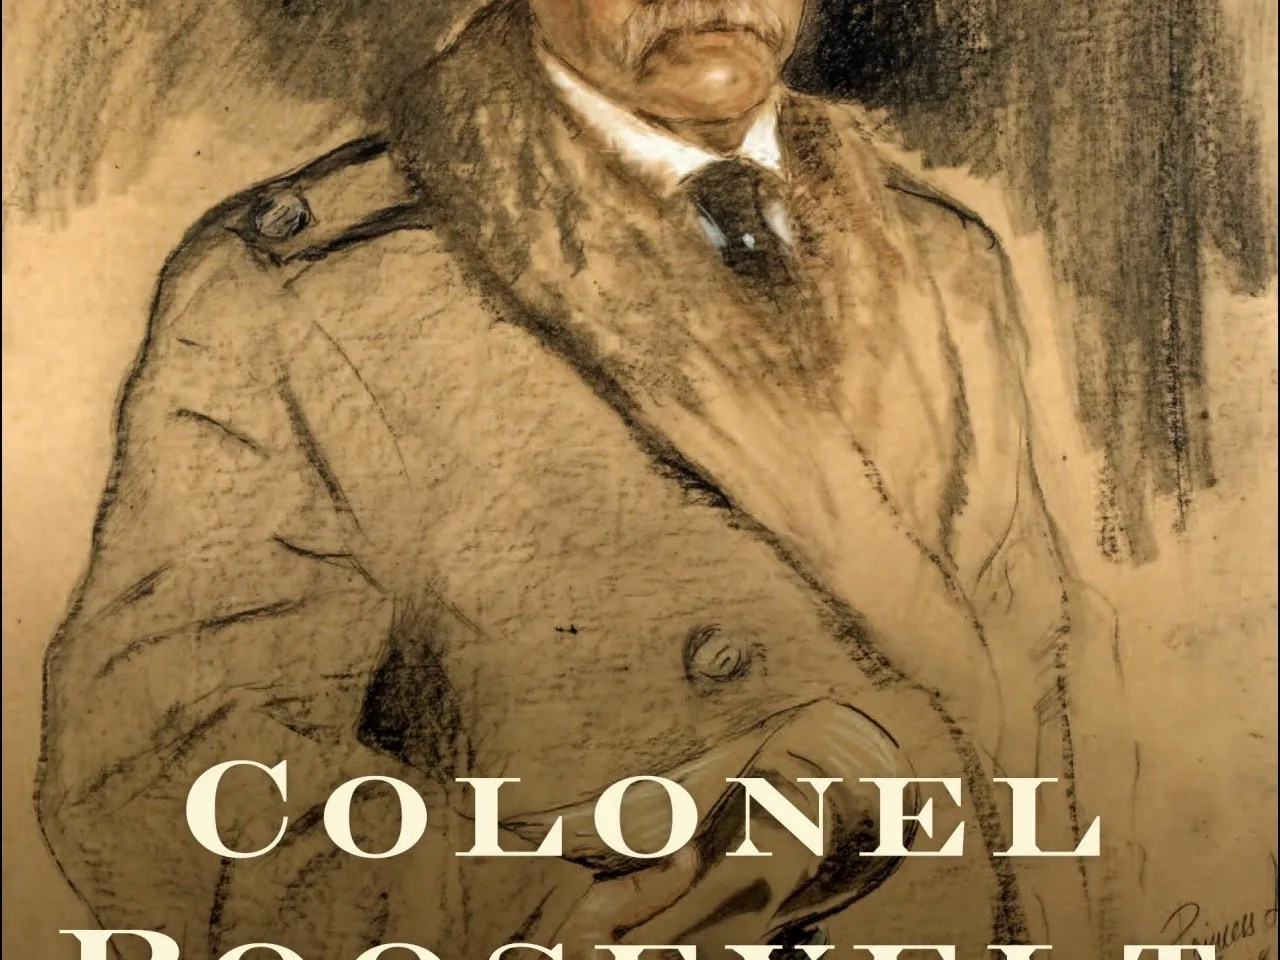 The Teddy Roosevelt Biography That Sets A New Standard